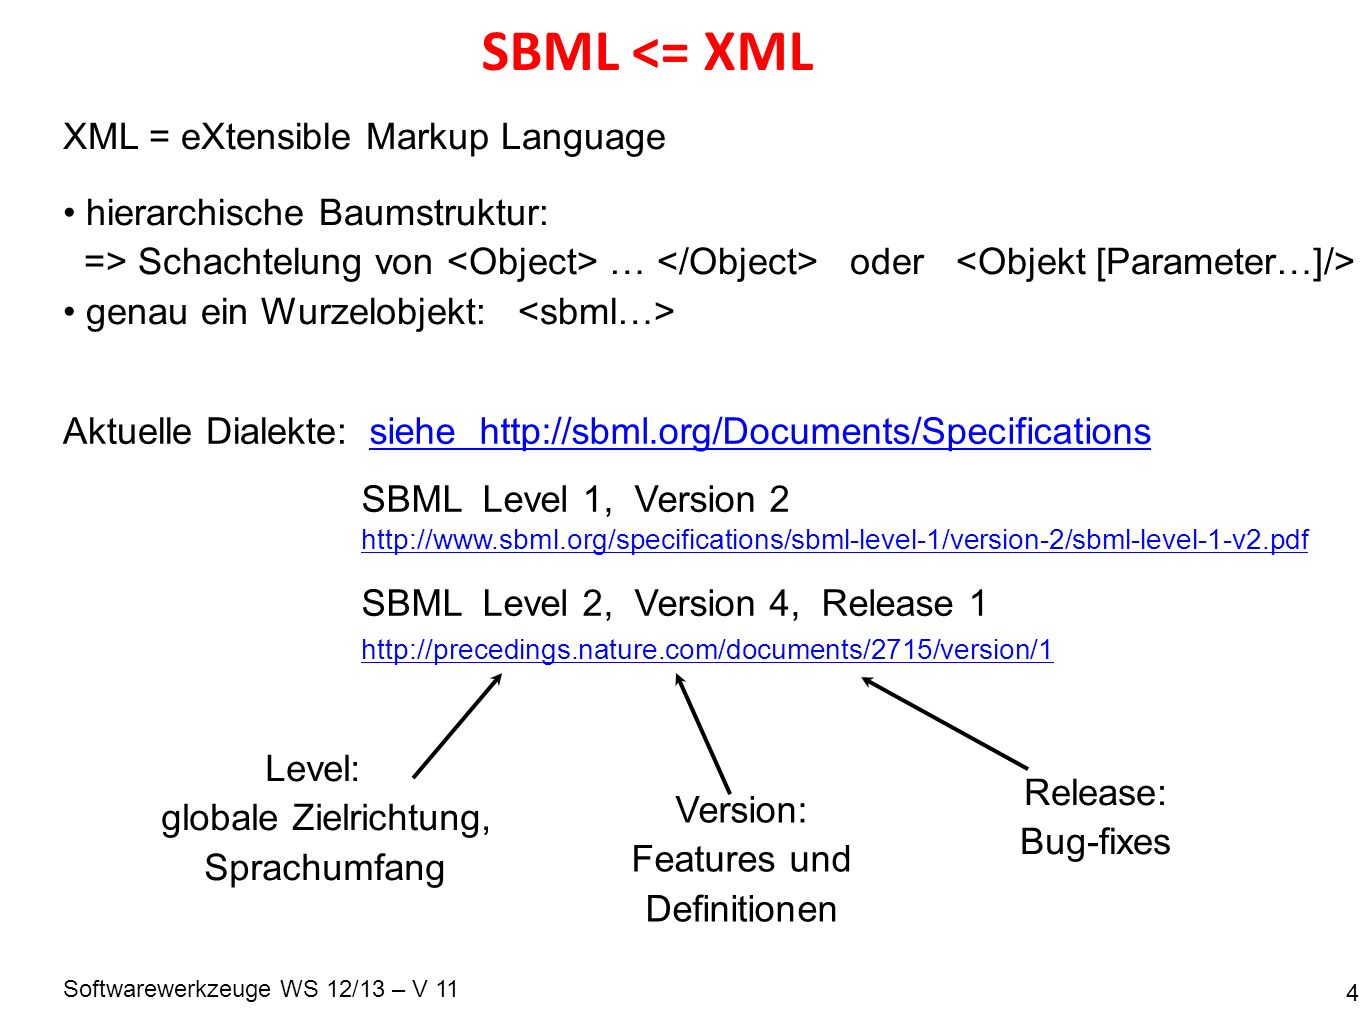 Softwarewerkzeuge WS 12/13 – V 11 SBML <= XML 4 XML = eXtensible Markup Language hierarchische Baumstruktur: => Schachtelung von … oder genau ein Wurzelobjekt: Aktuelle Dialekte: SBML Level 1, Version 2 SBML Level 2, Version 4, Release 1 Level: globale Zielrichtung, Sprachumfang Version: Features und Definitionen Release: Bug-fixes siehe http://sbml.org/Documents/Specifications http://precedings.nature.com/documents/2715/version/1 http://www.sbml.org/specifications/sbml-level-1/version-2/sbml-level-1-v2.pdf